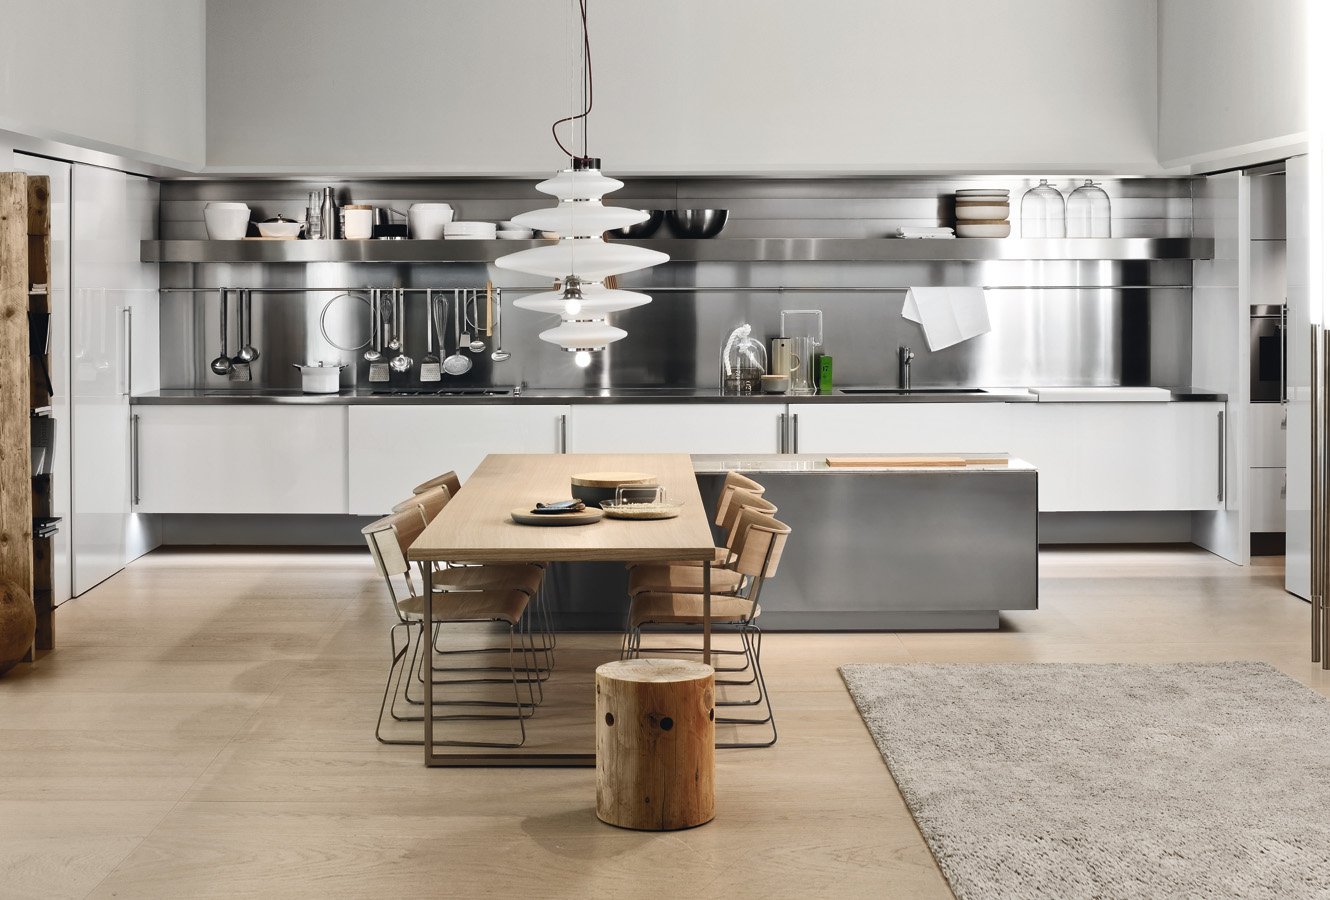 Revealed Kitchen Space - Modern italian kitchen design from arclinea